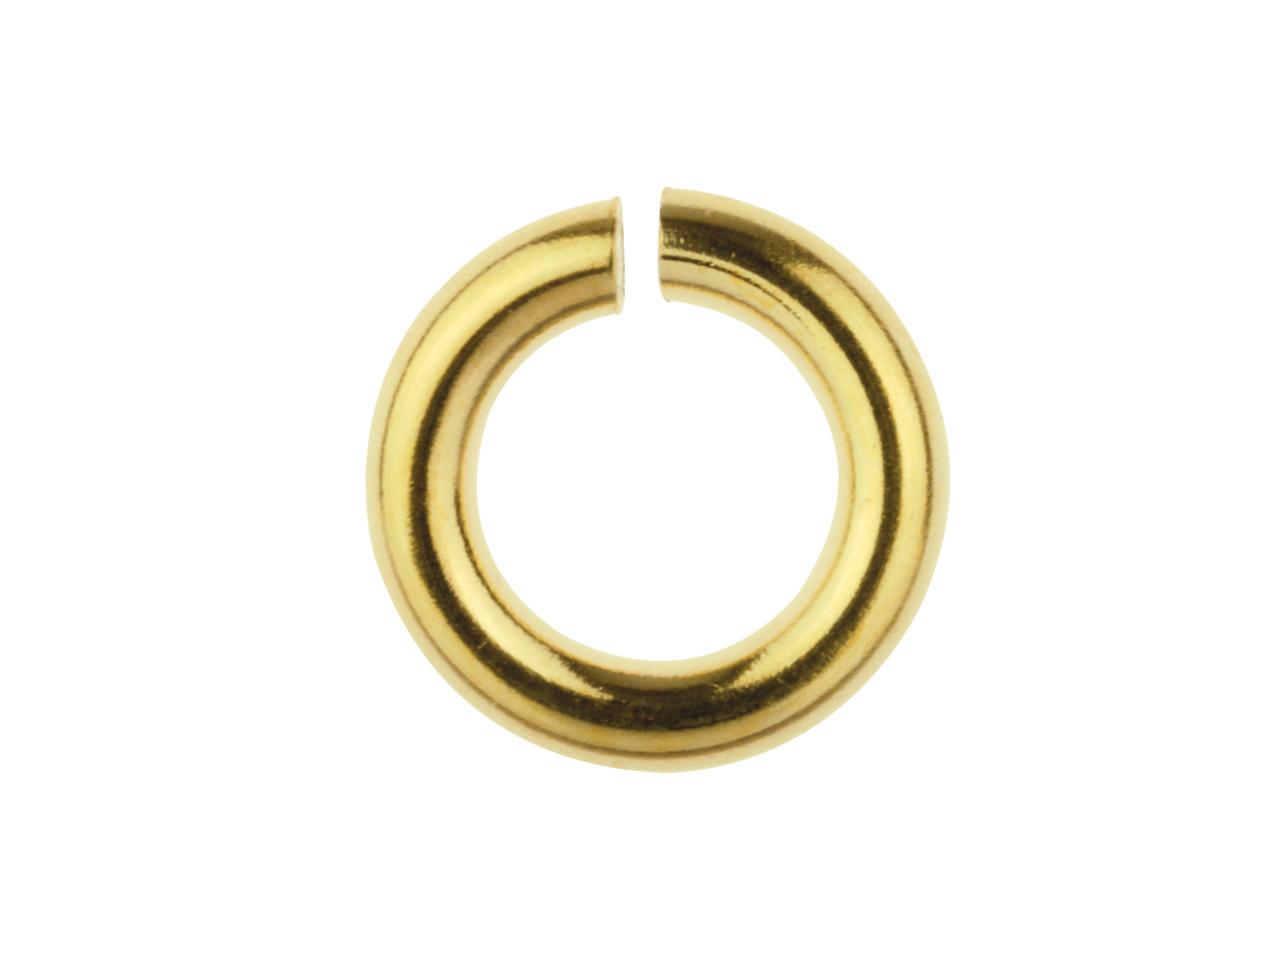 14ct Gold Filled Open Jump Ring 5mm Pack of 10